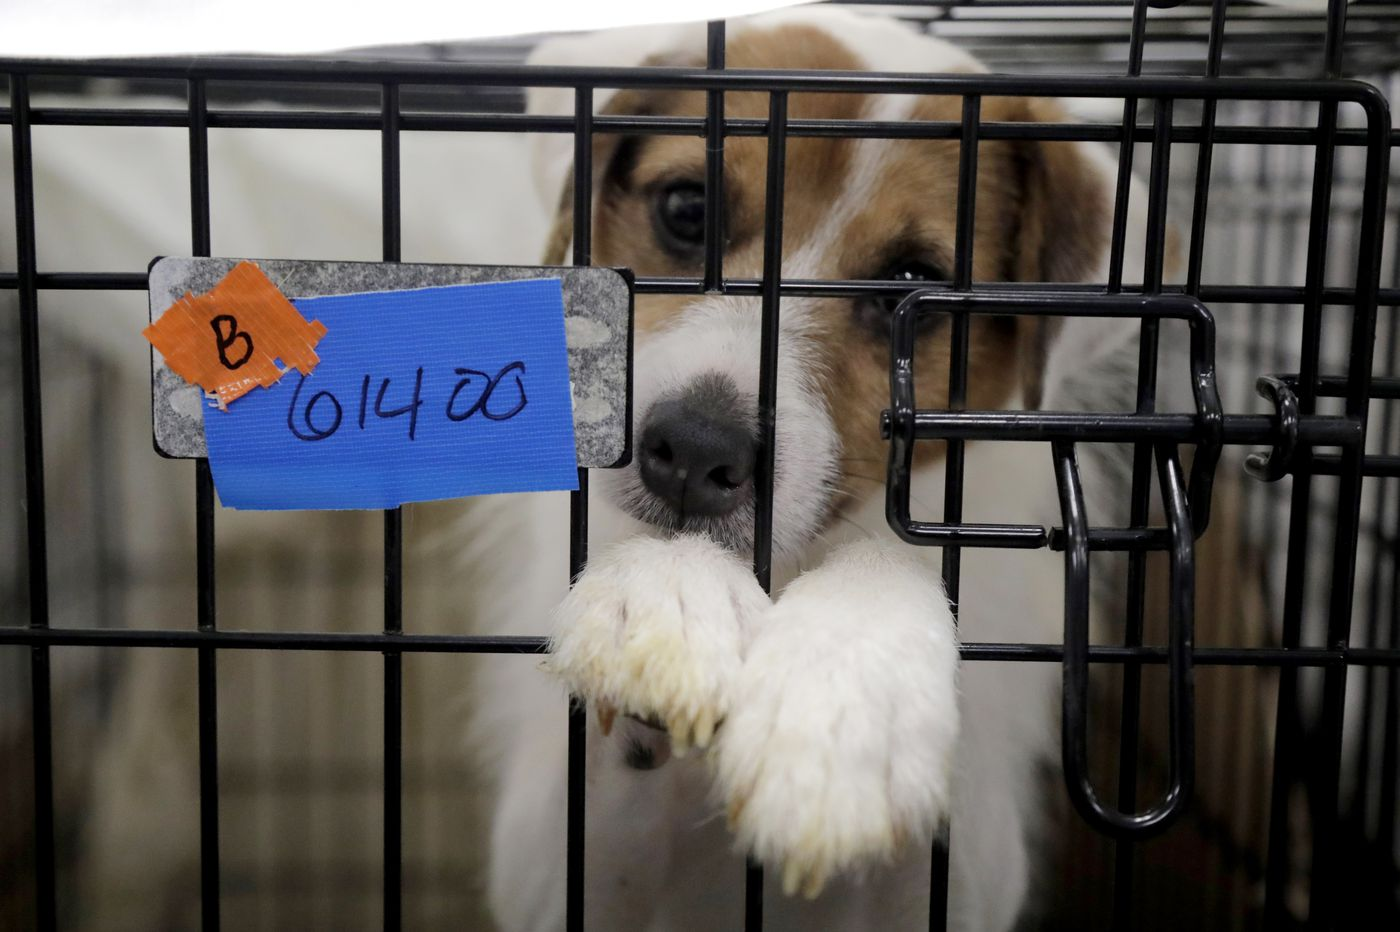 Some of nearly 200 dogs rescued from N.J. property almost ready for adoption